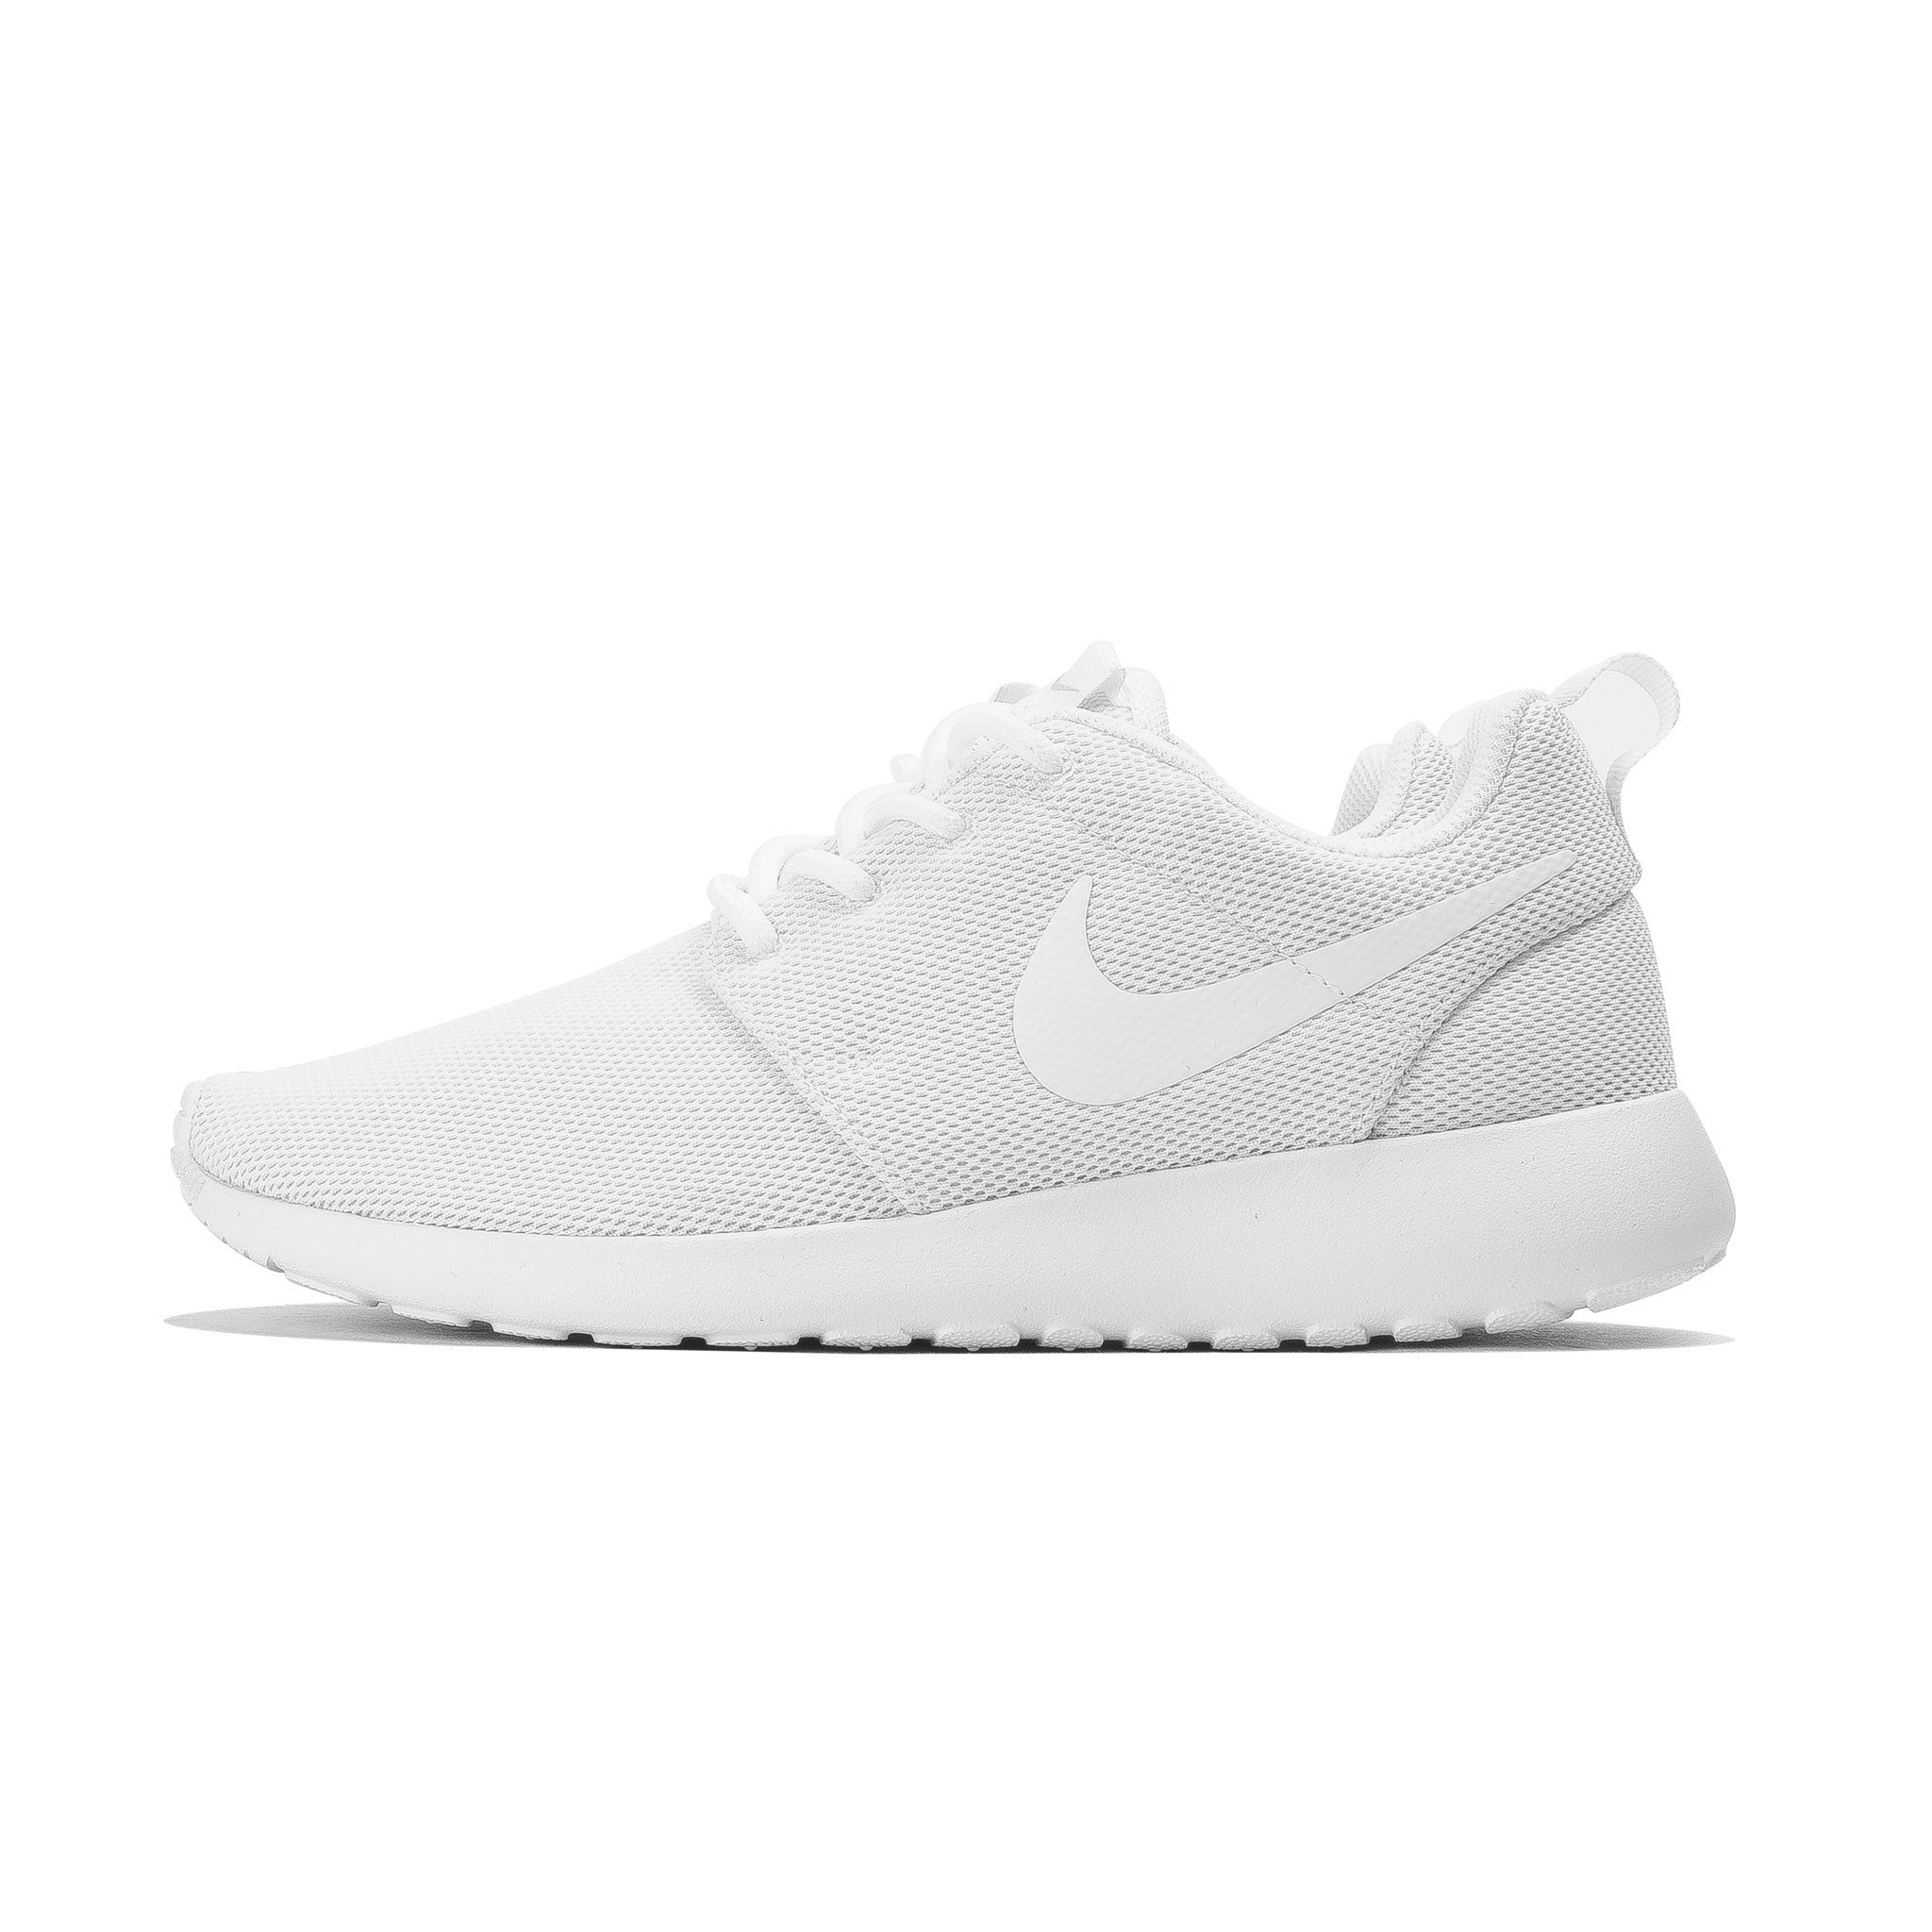 W Roshe One 844994-100 White